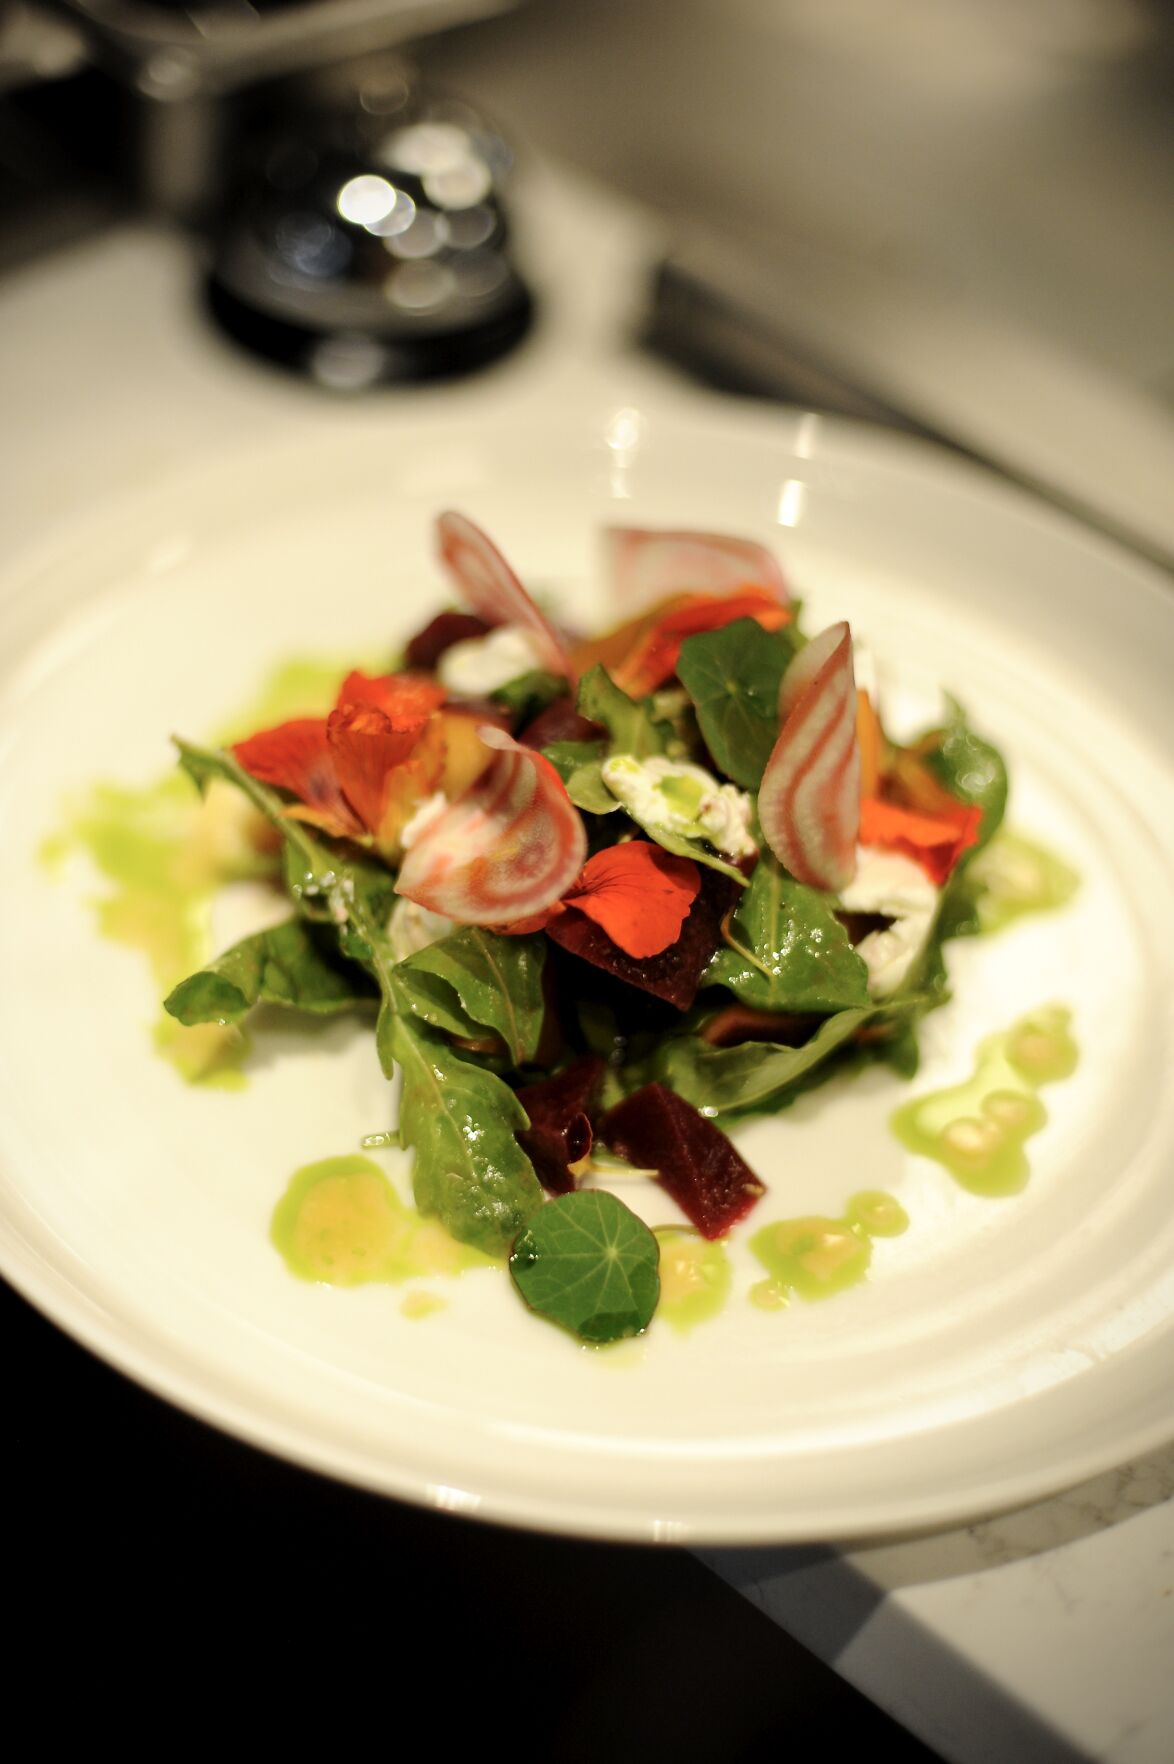 FIRST LIGHT BEET SALAD WITH PEACH, ARUGULA, BASIL, and VALLEY VIEW CHEVRÈ